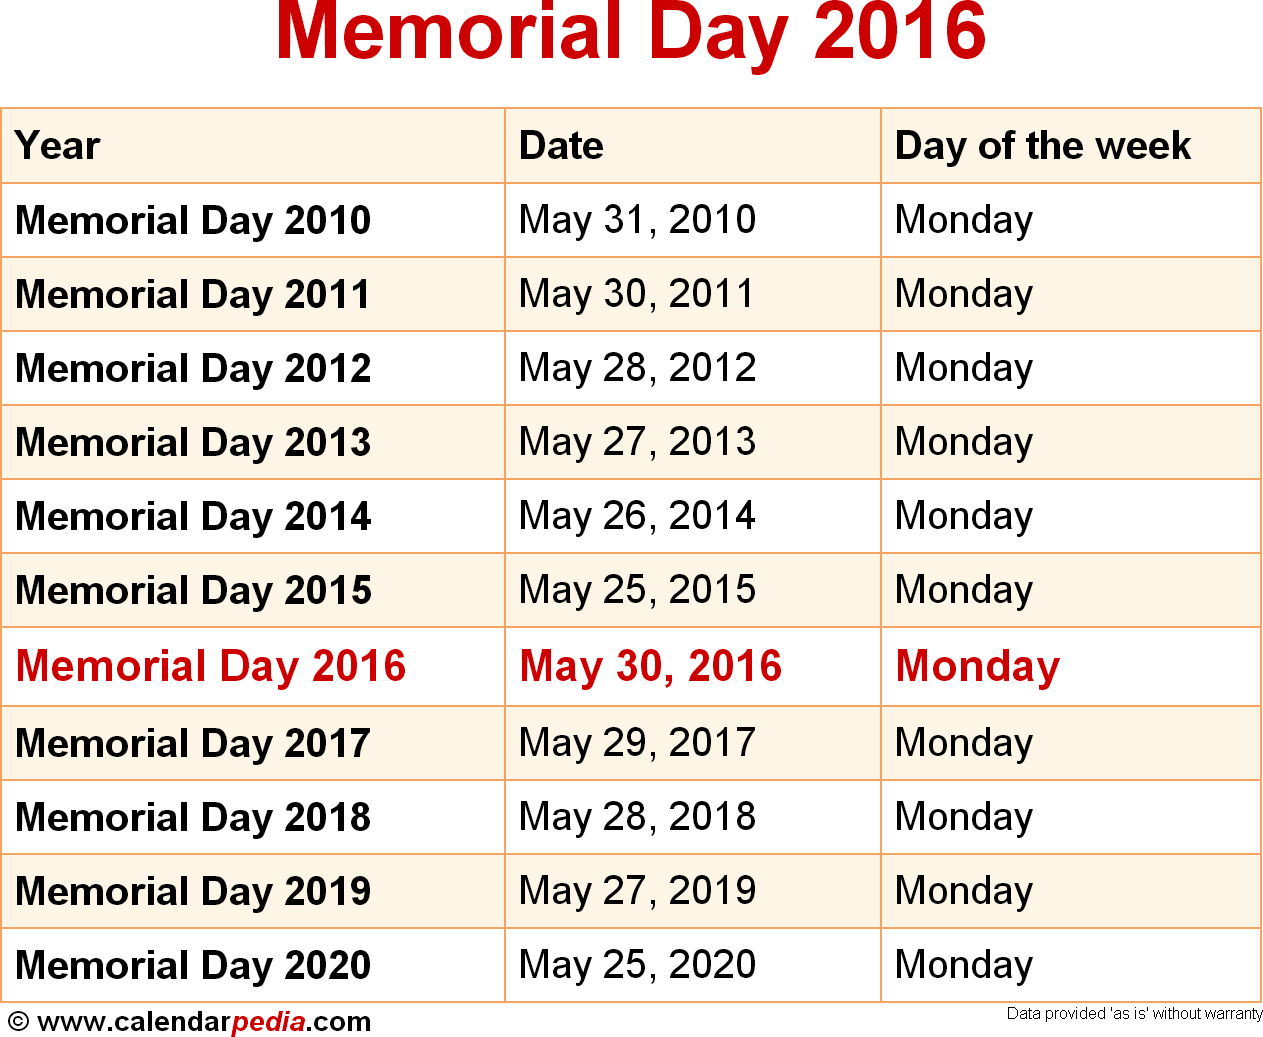 What is the date of memorial day in Melbourne